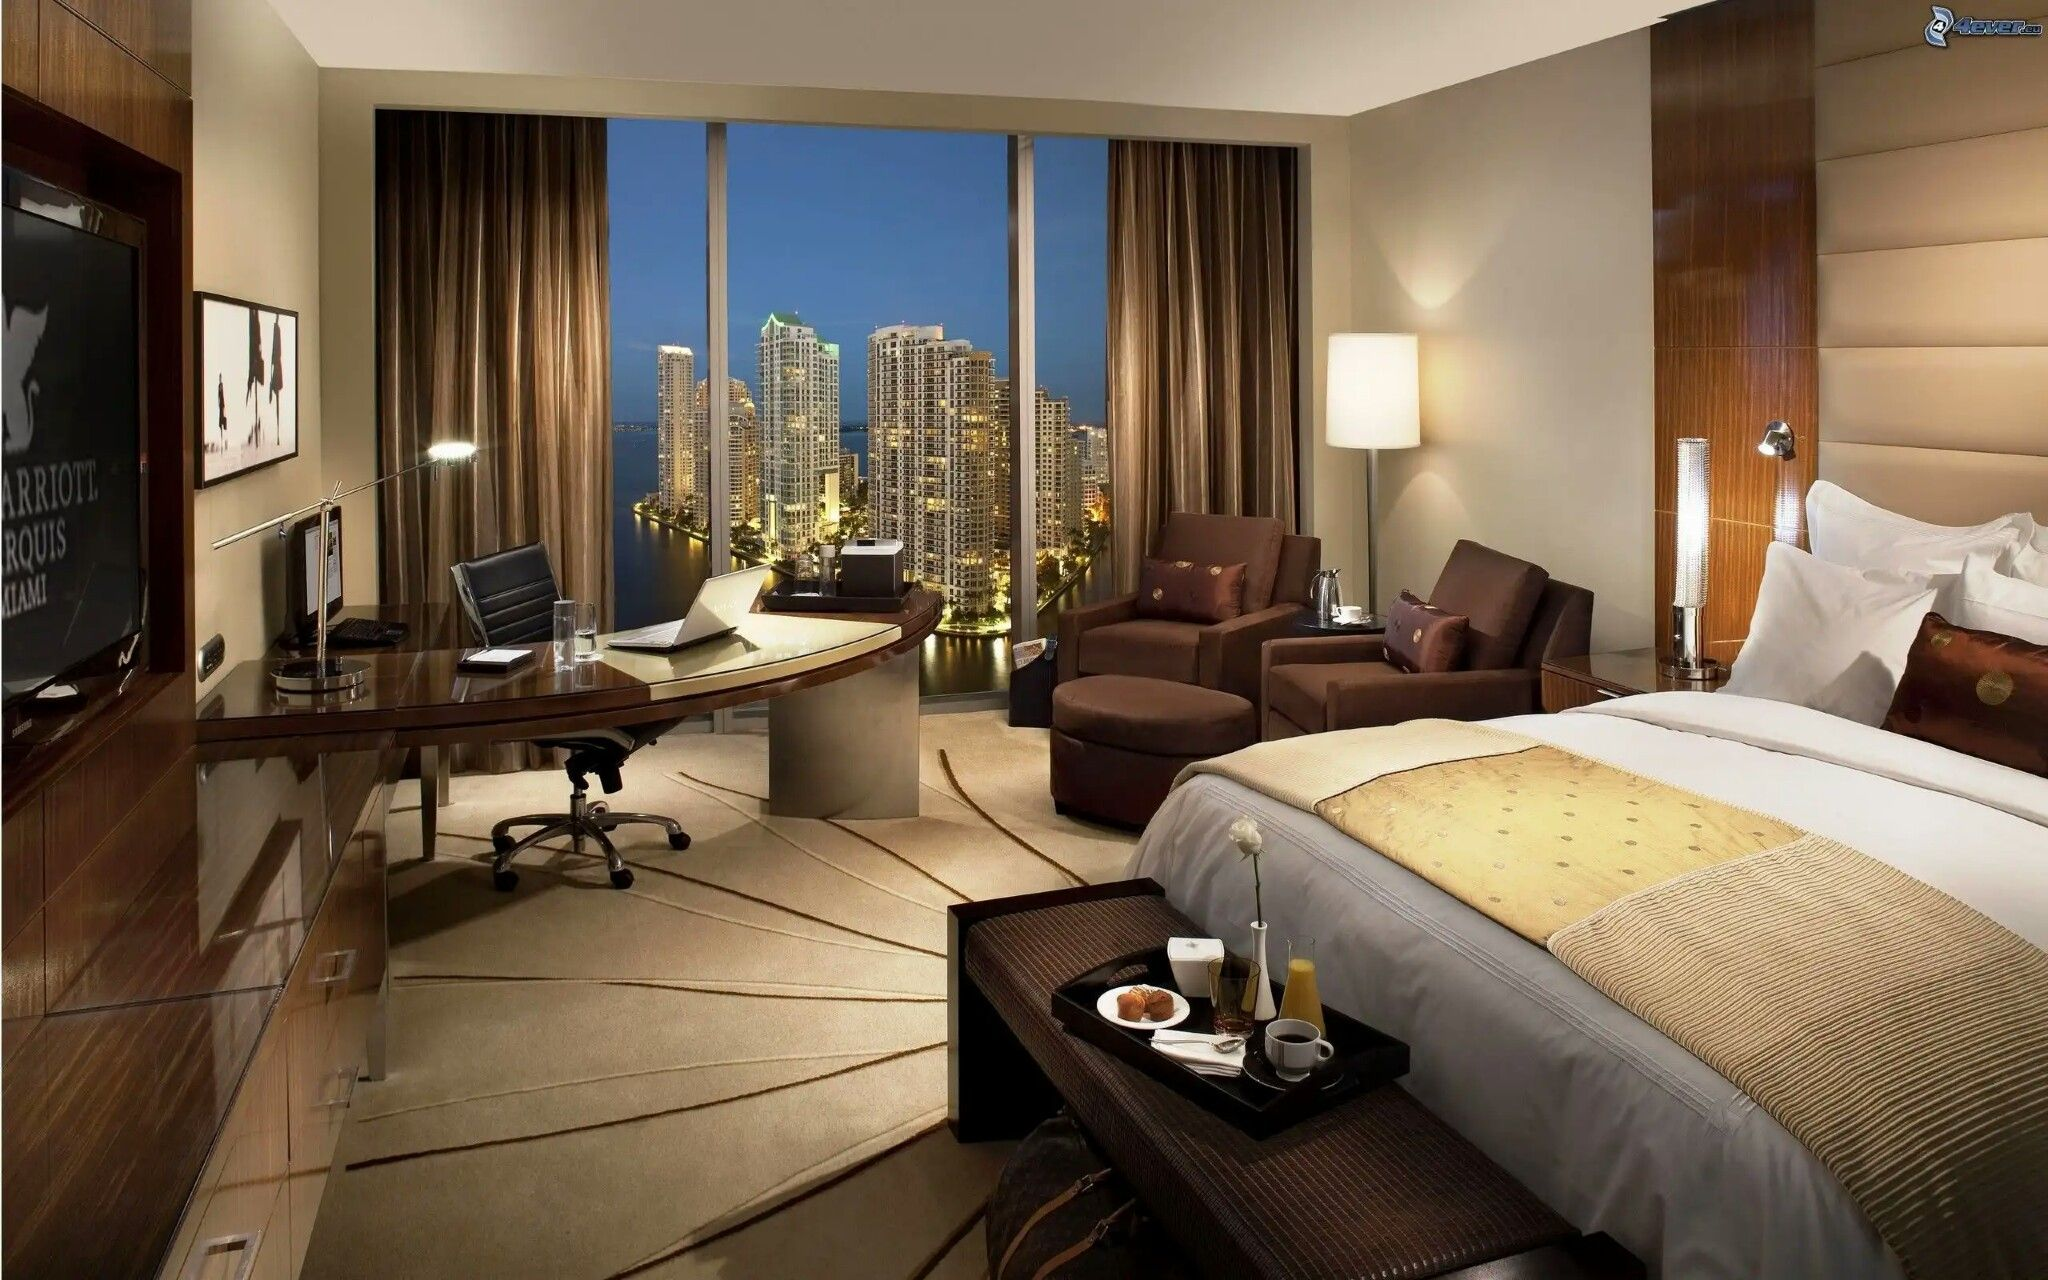 Pin By K On Opulent With Images Luxury Hotel Room Beautiful